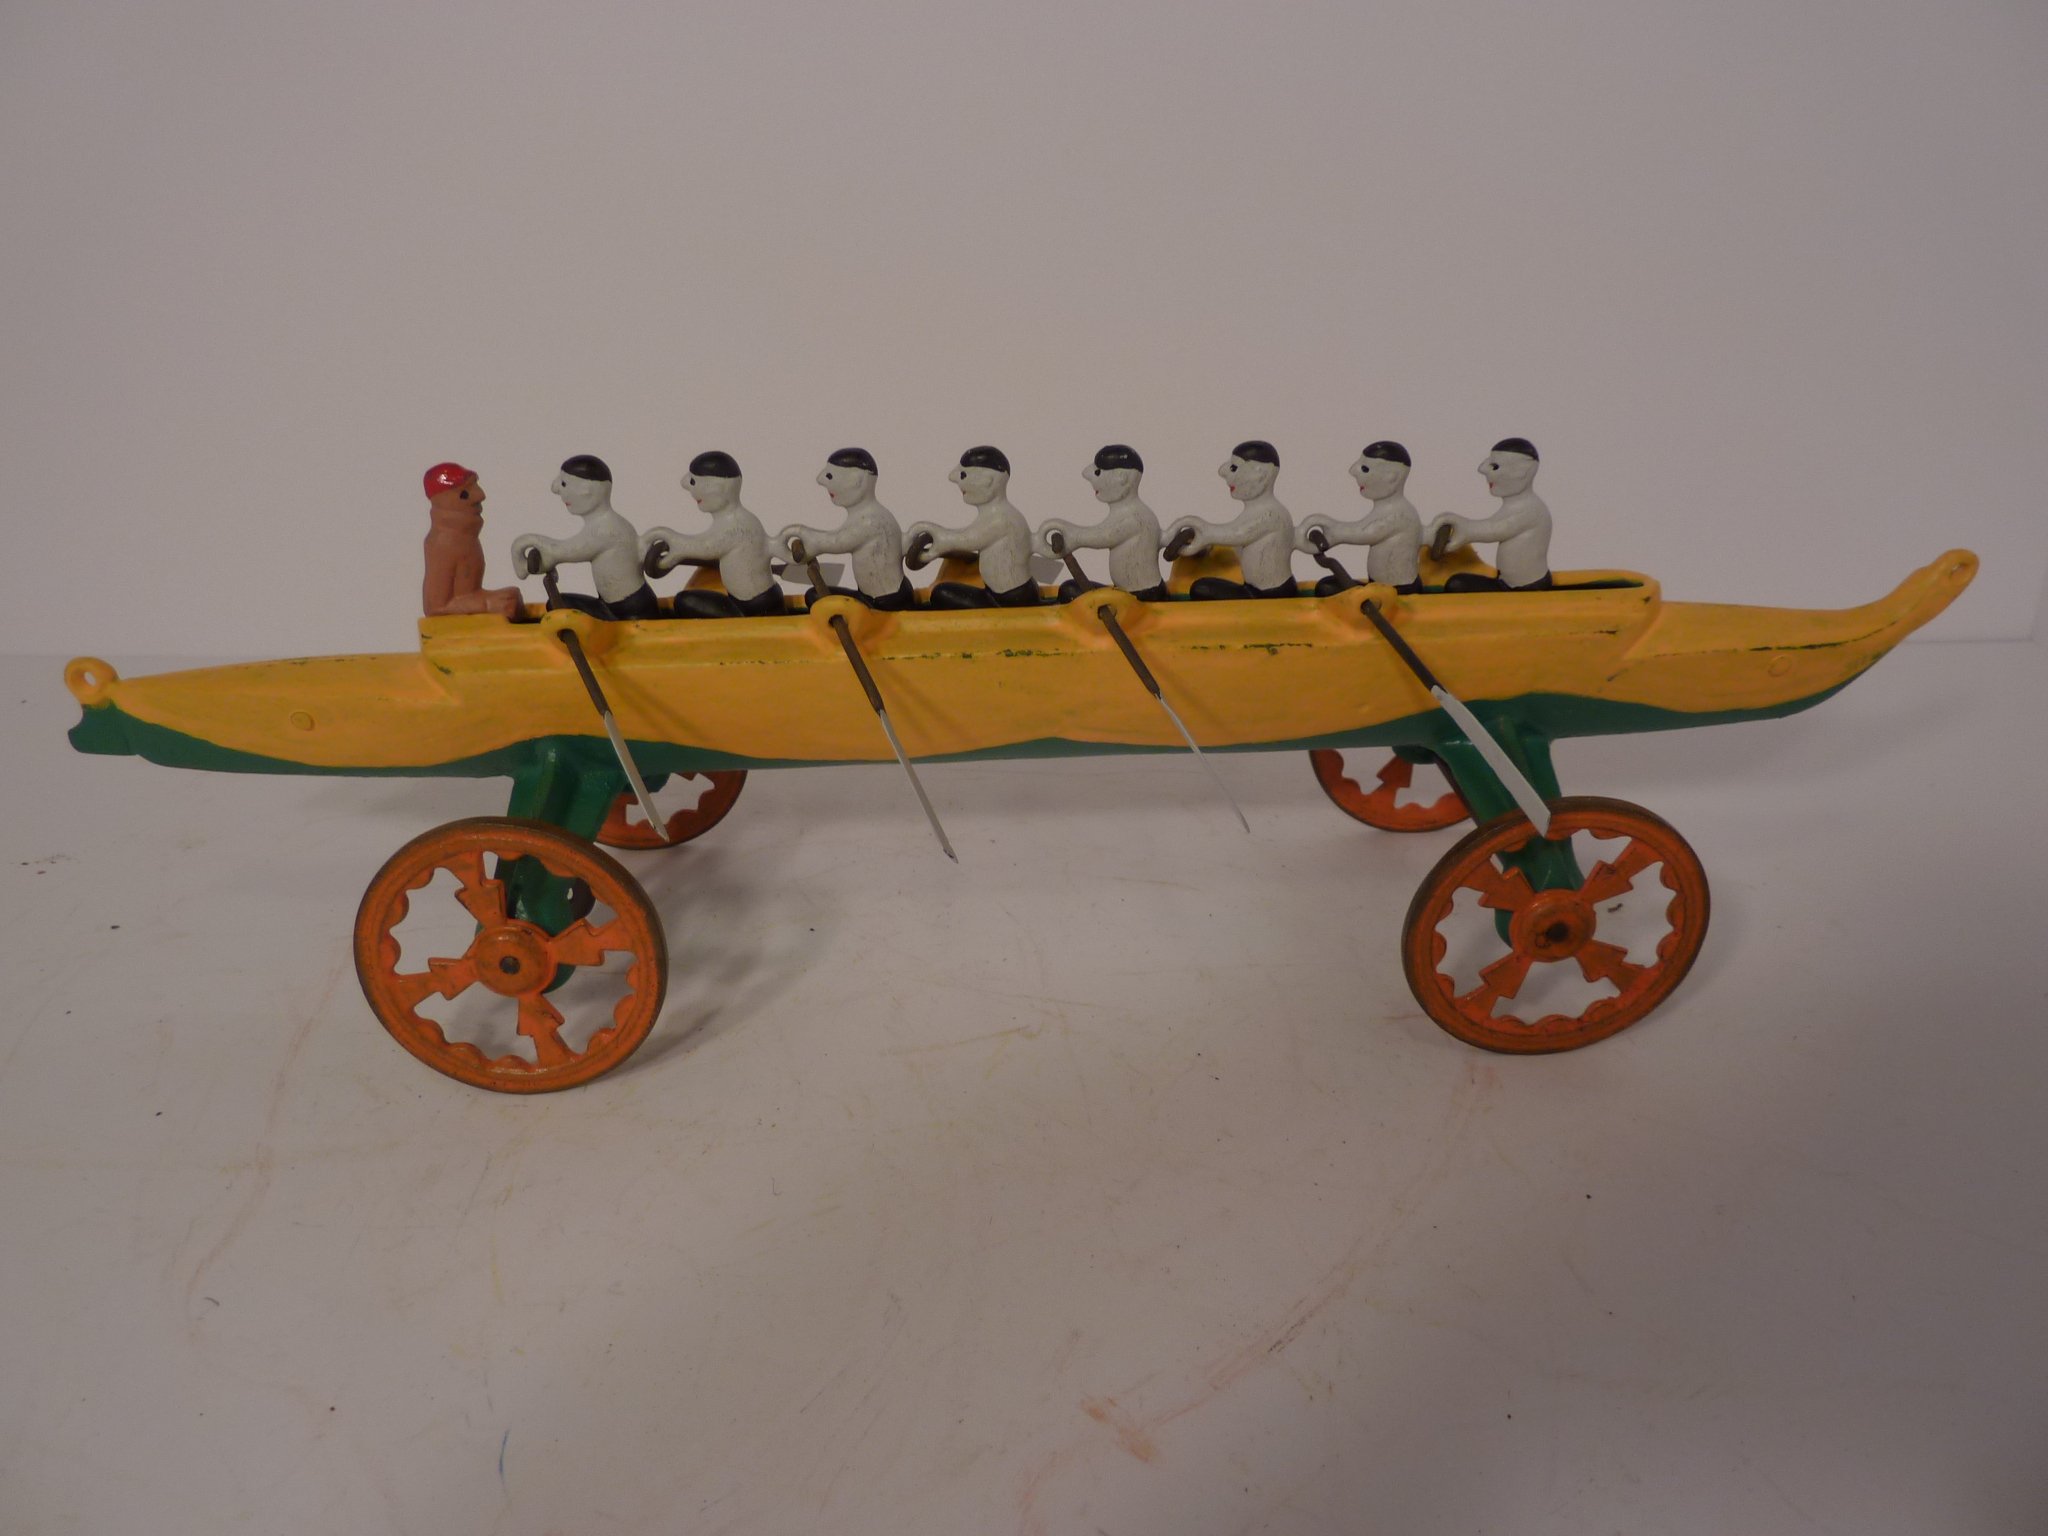 RARE EIGHT MAN RACING SKUL THE LARGEST 14 1 2 INCH EXC RESTORATION Antique Toys USA